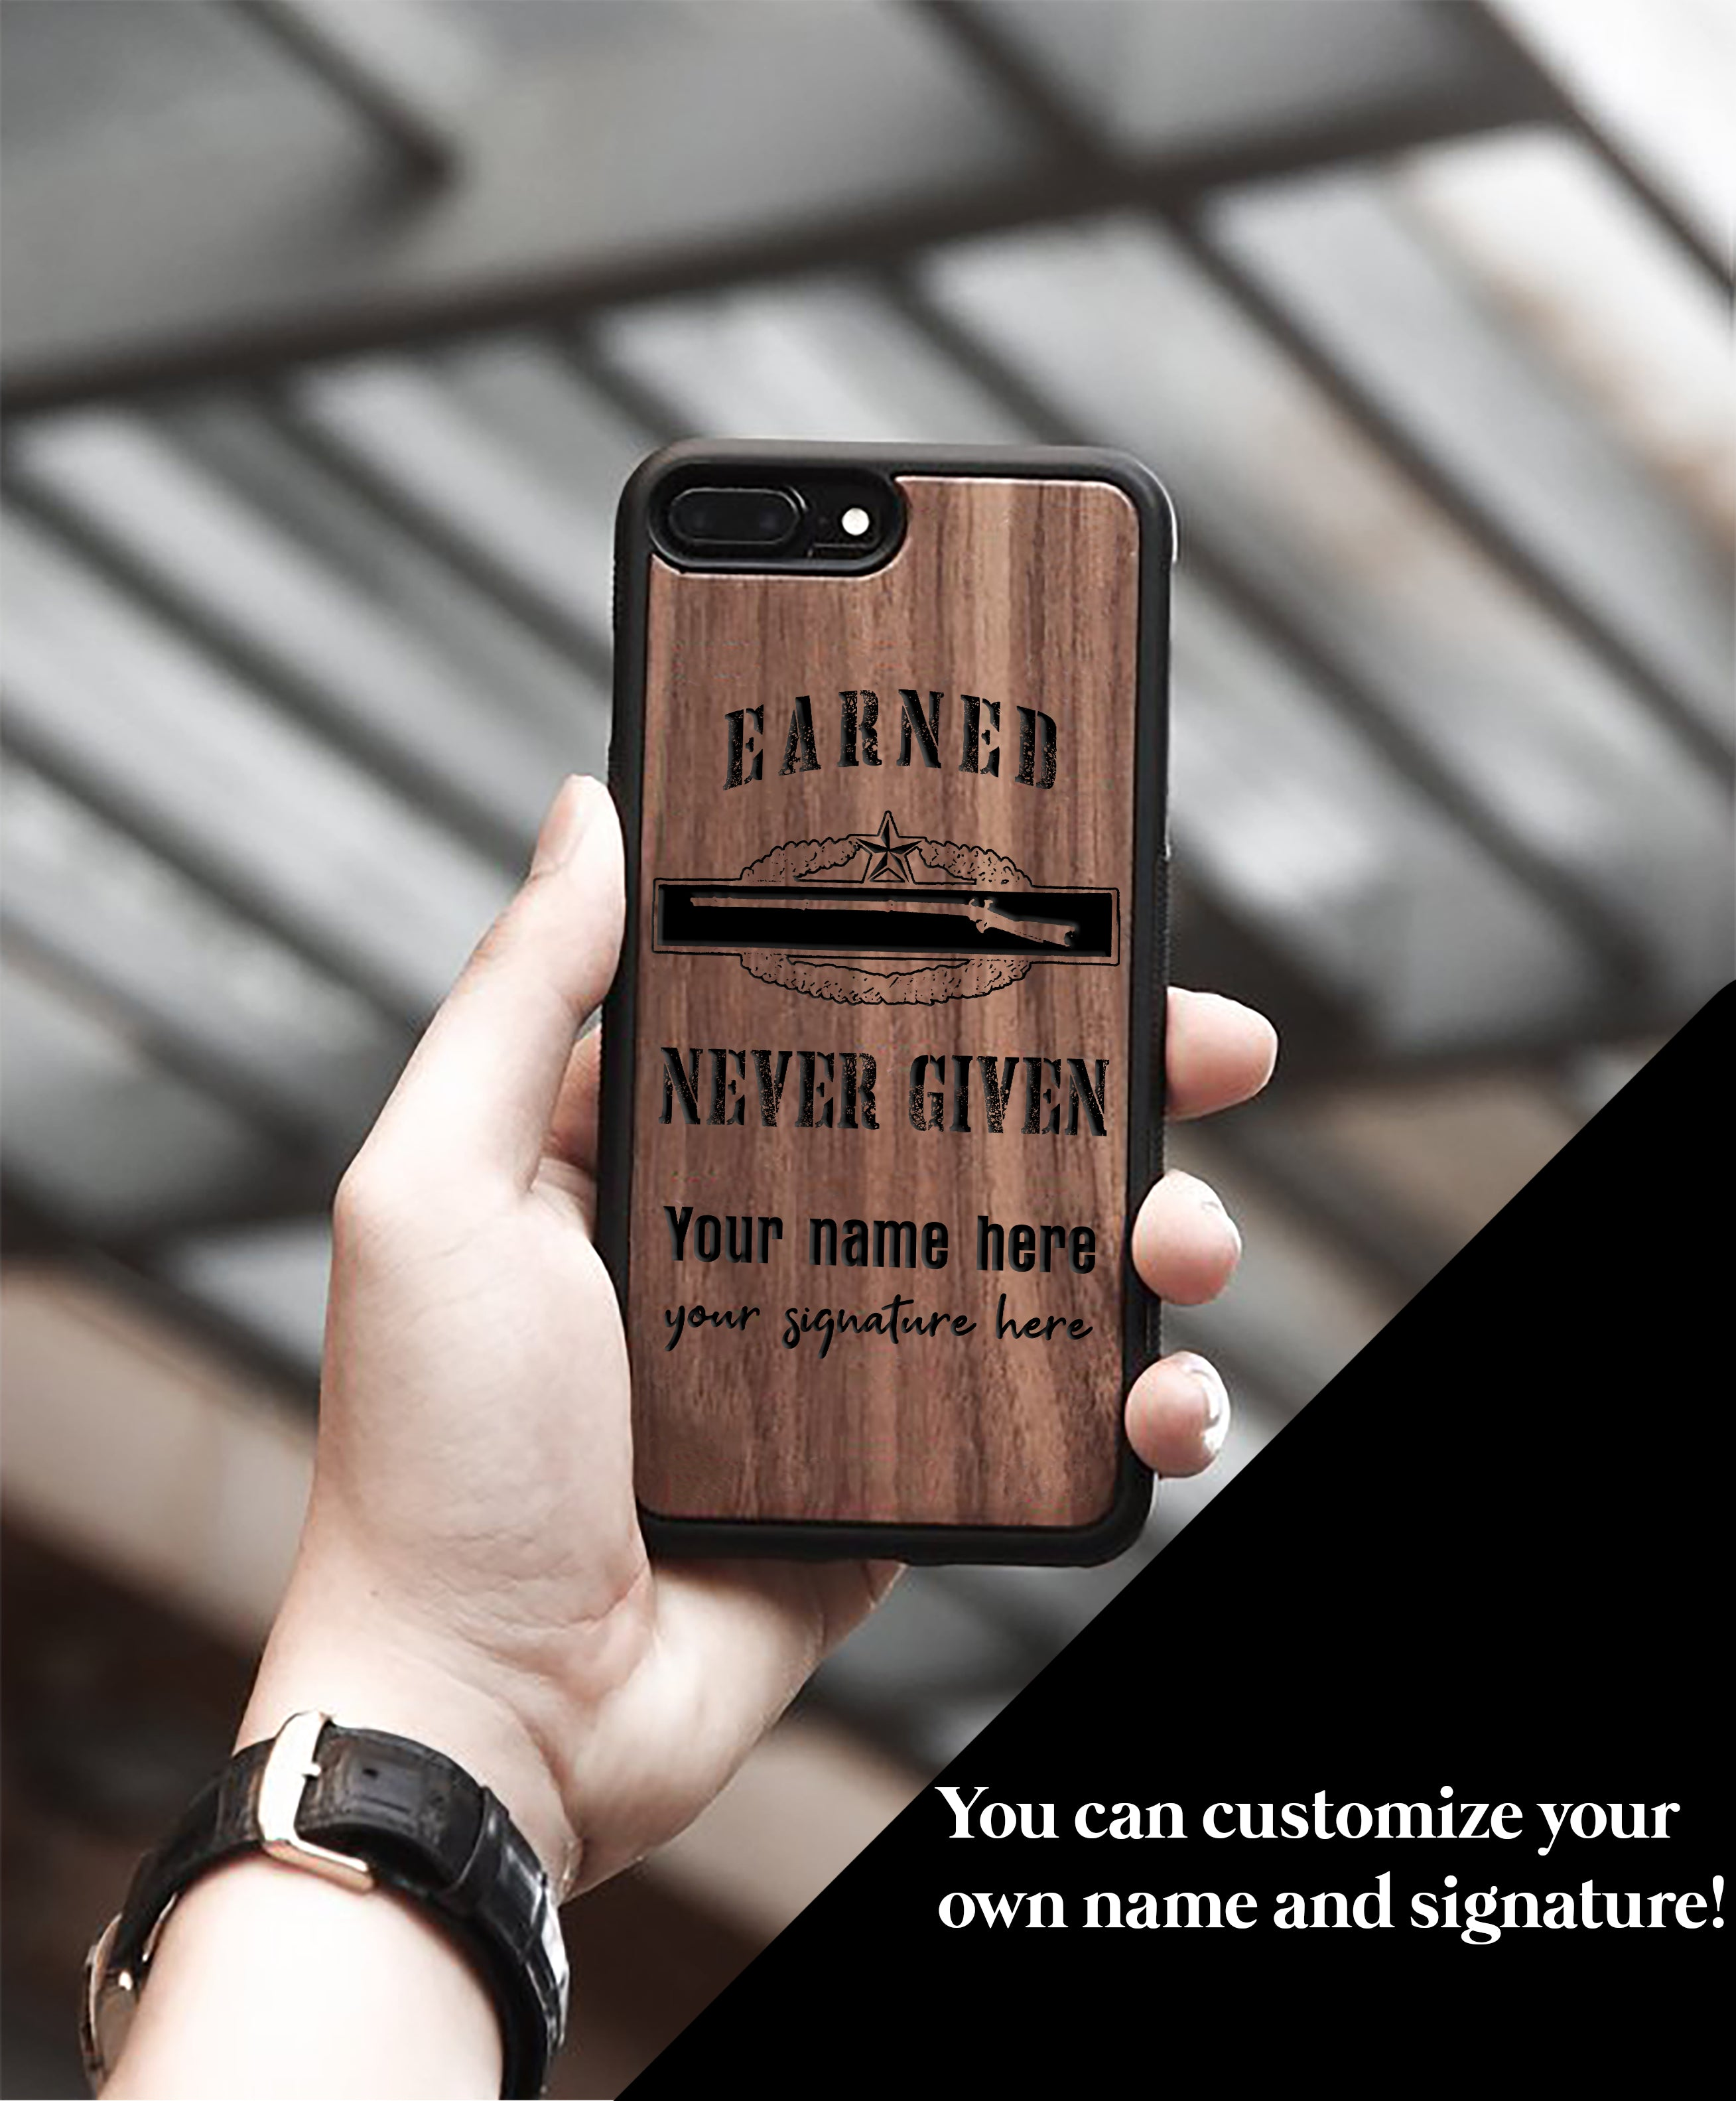 WeinFlux - Earned, Never Given Phone Case